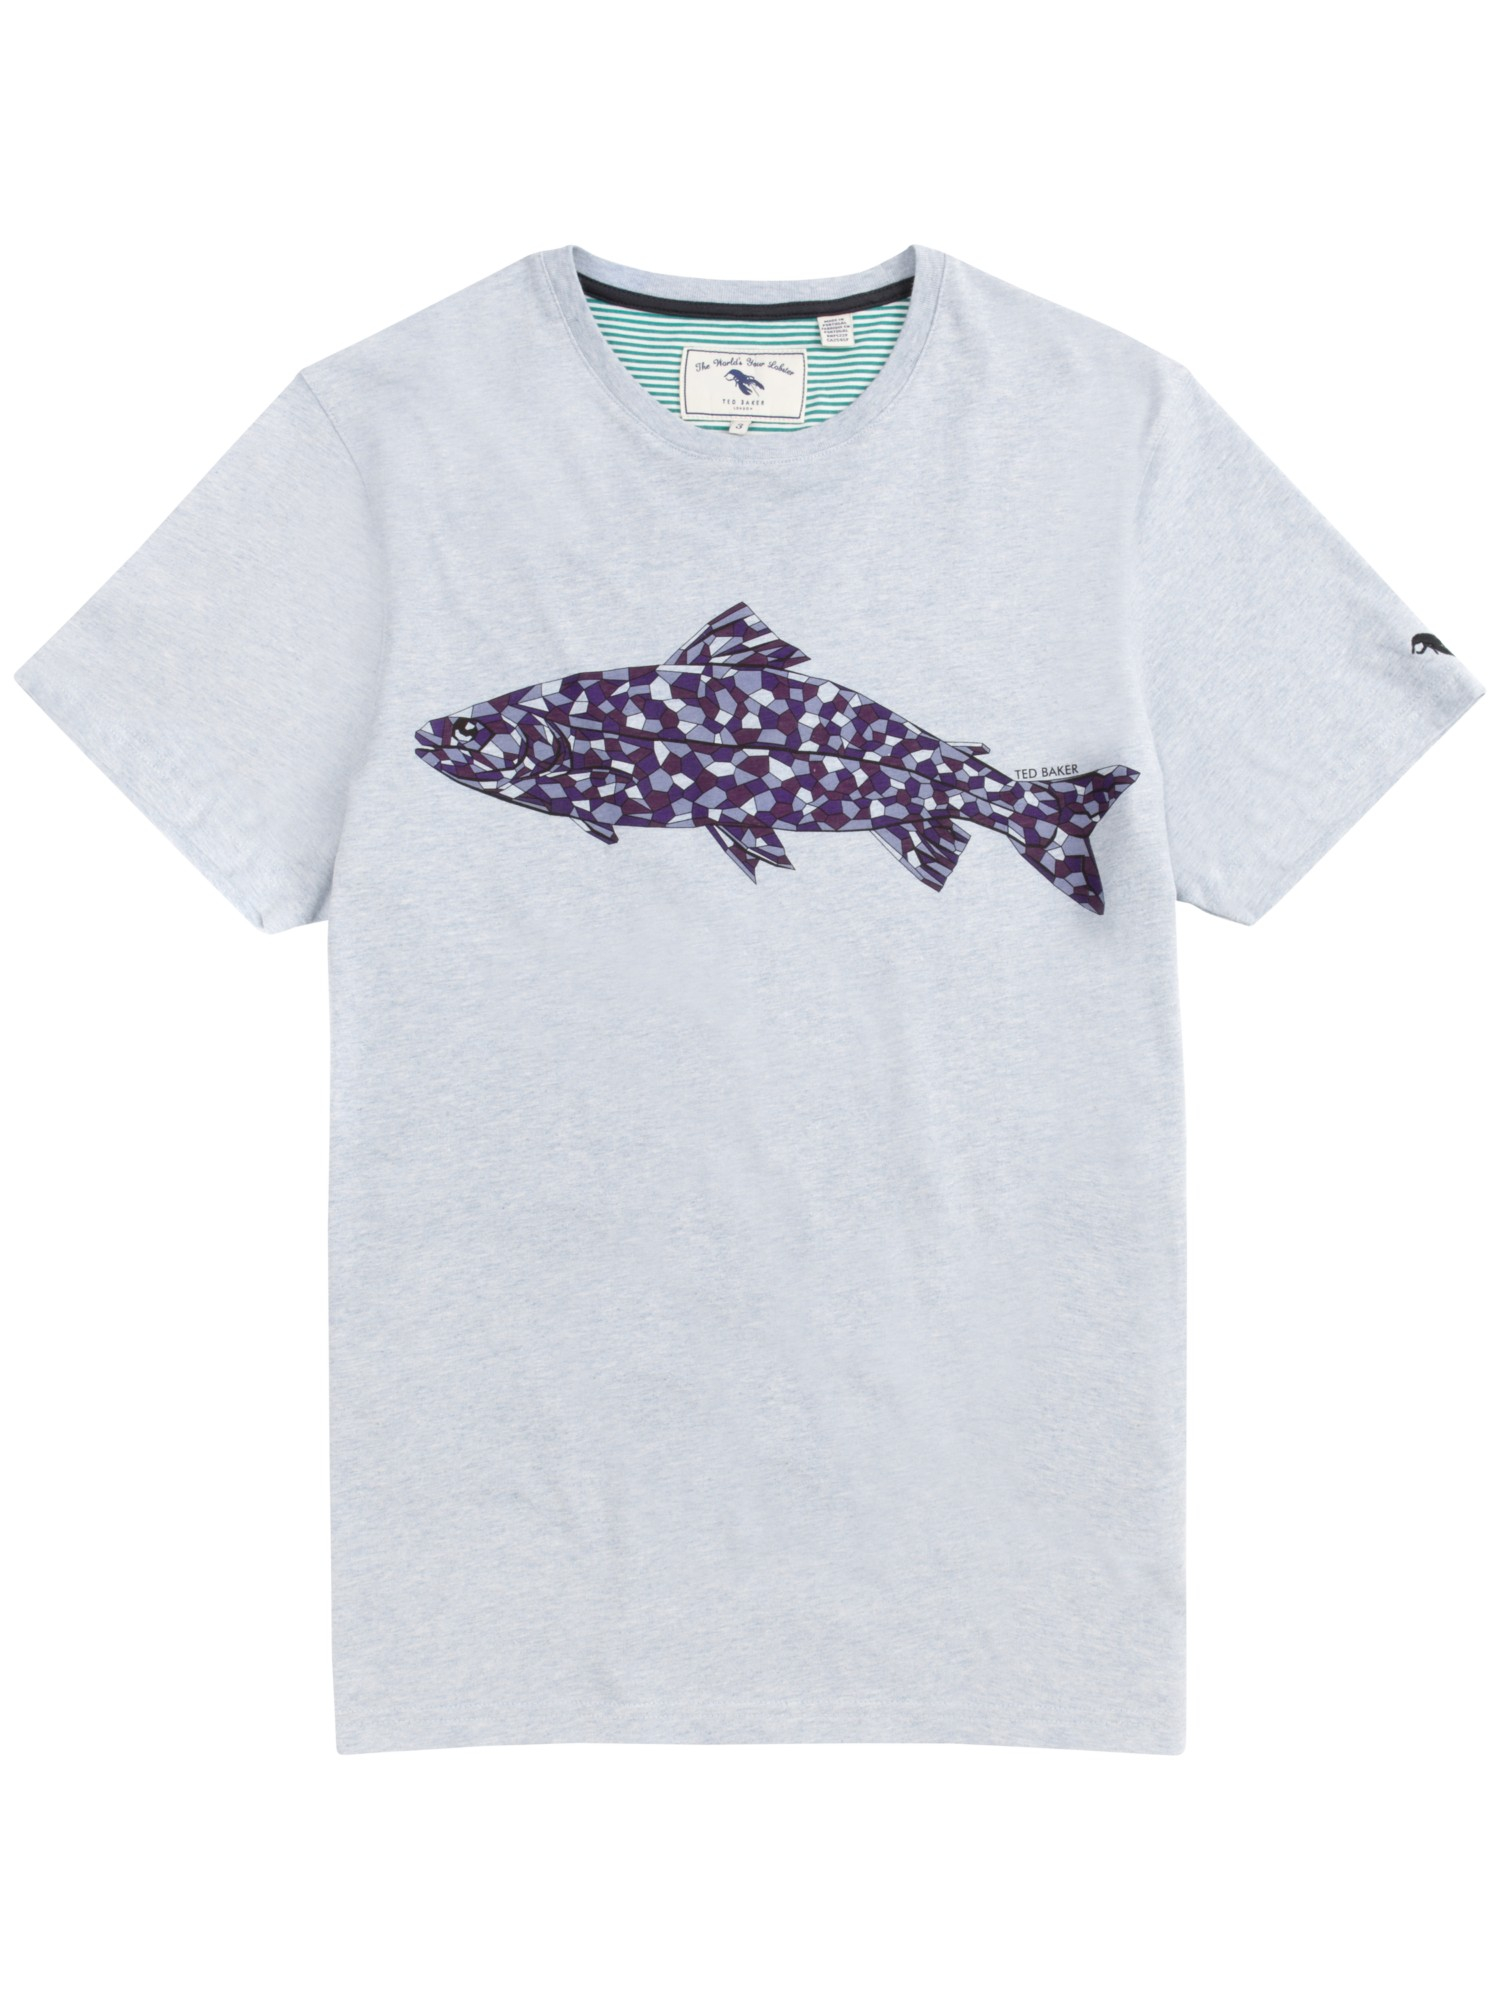 ee9f75bc2134 Ted Baker Ewell Fish Print T-Shirt in Blue for Men - Lyst